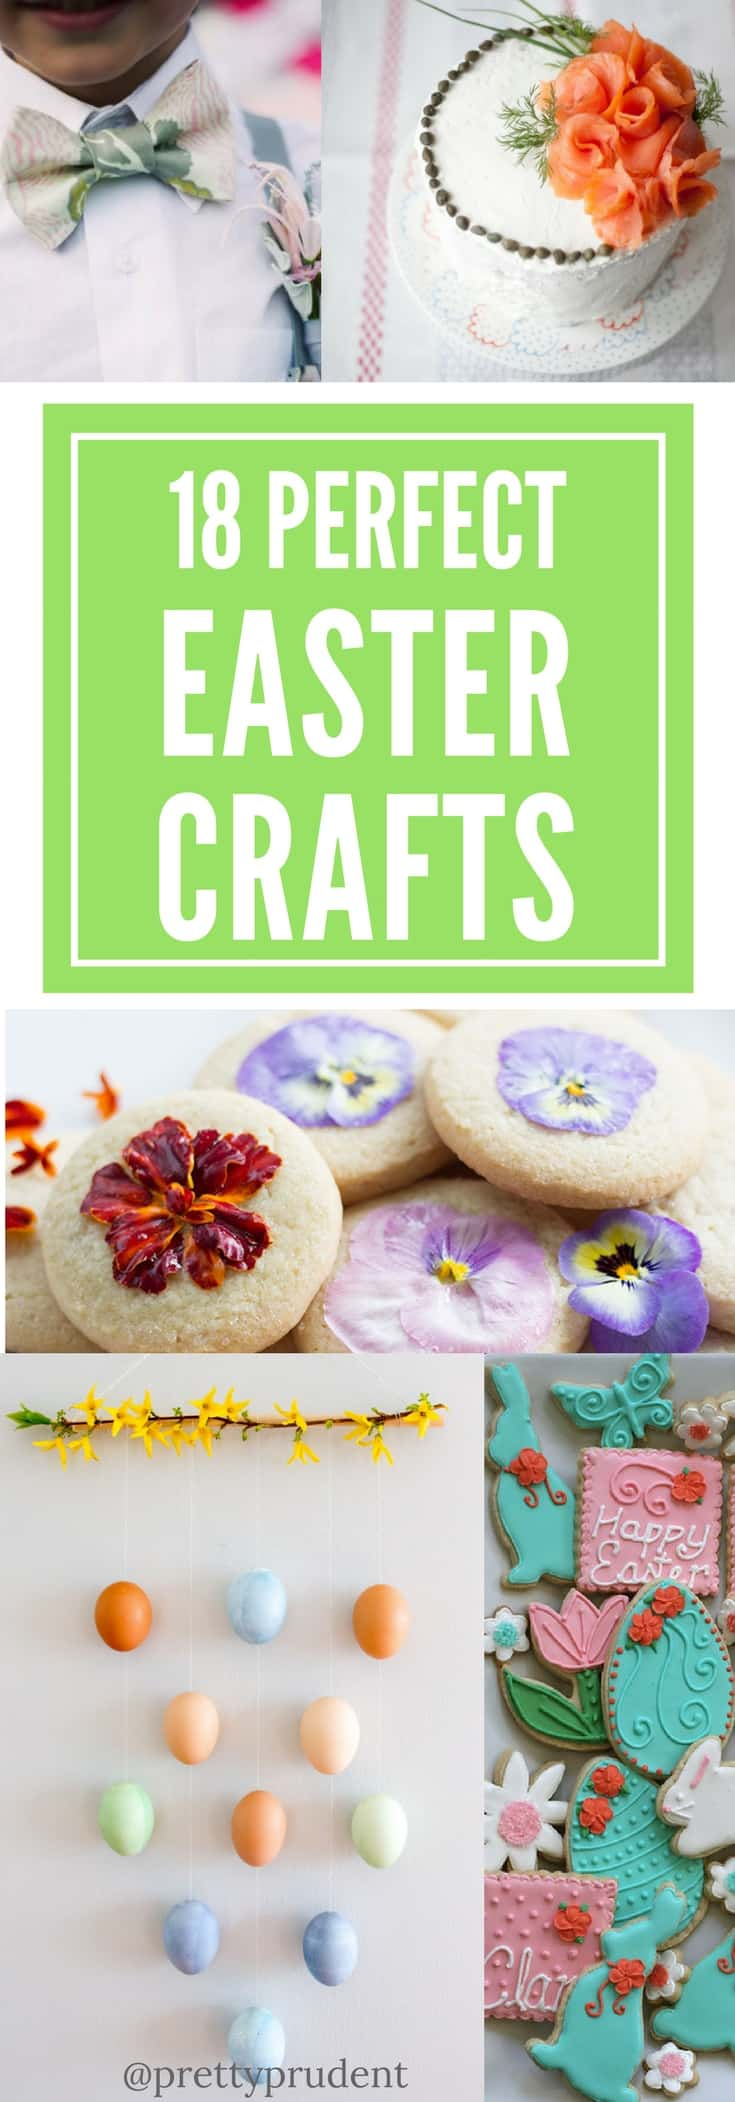 18 Easy Easter Crafts: Perfect, Simple Crafts for Easter